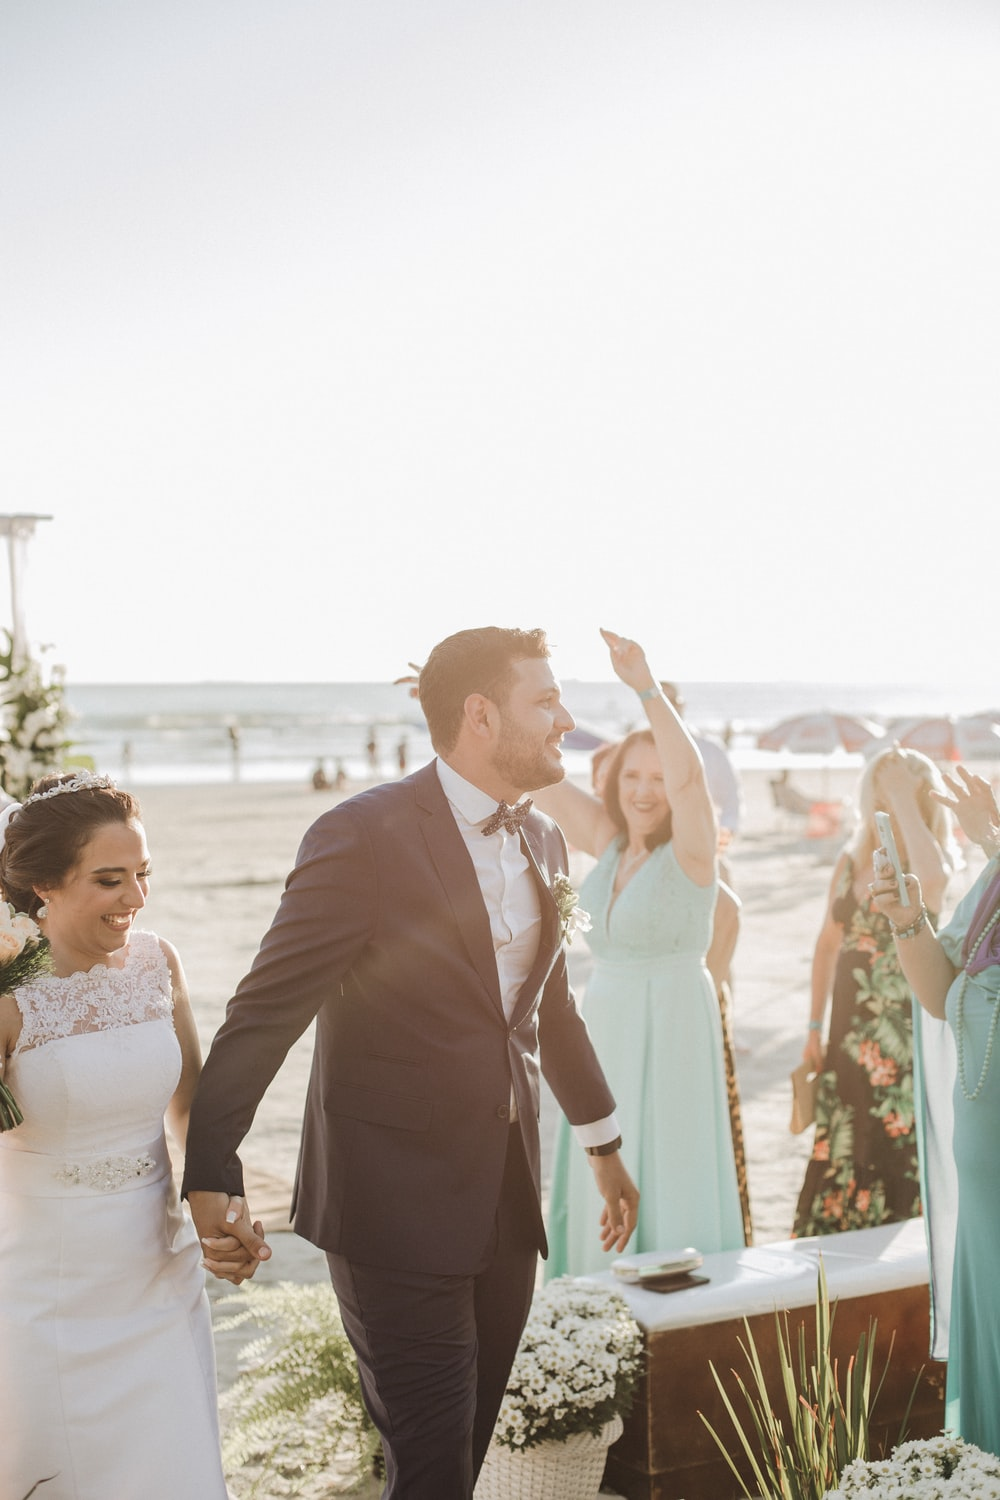 newly wed couple holding hands while standing surrounded with people viewing sea during daytime